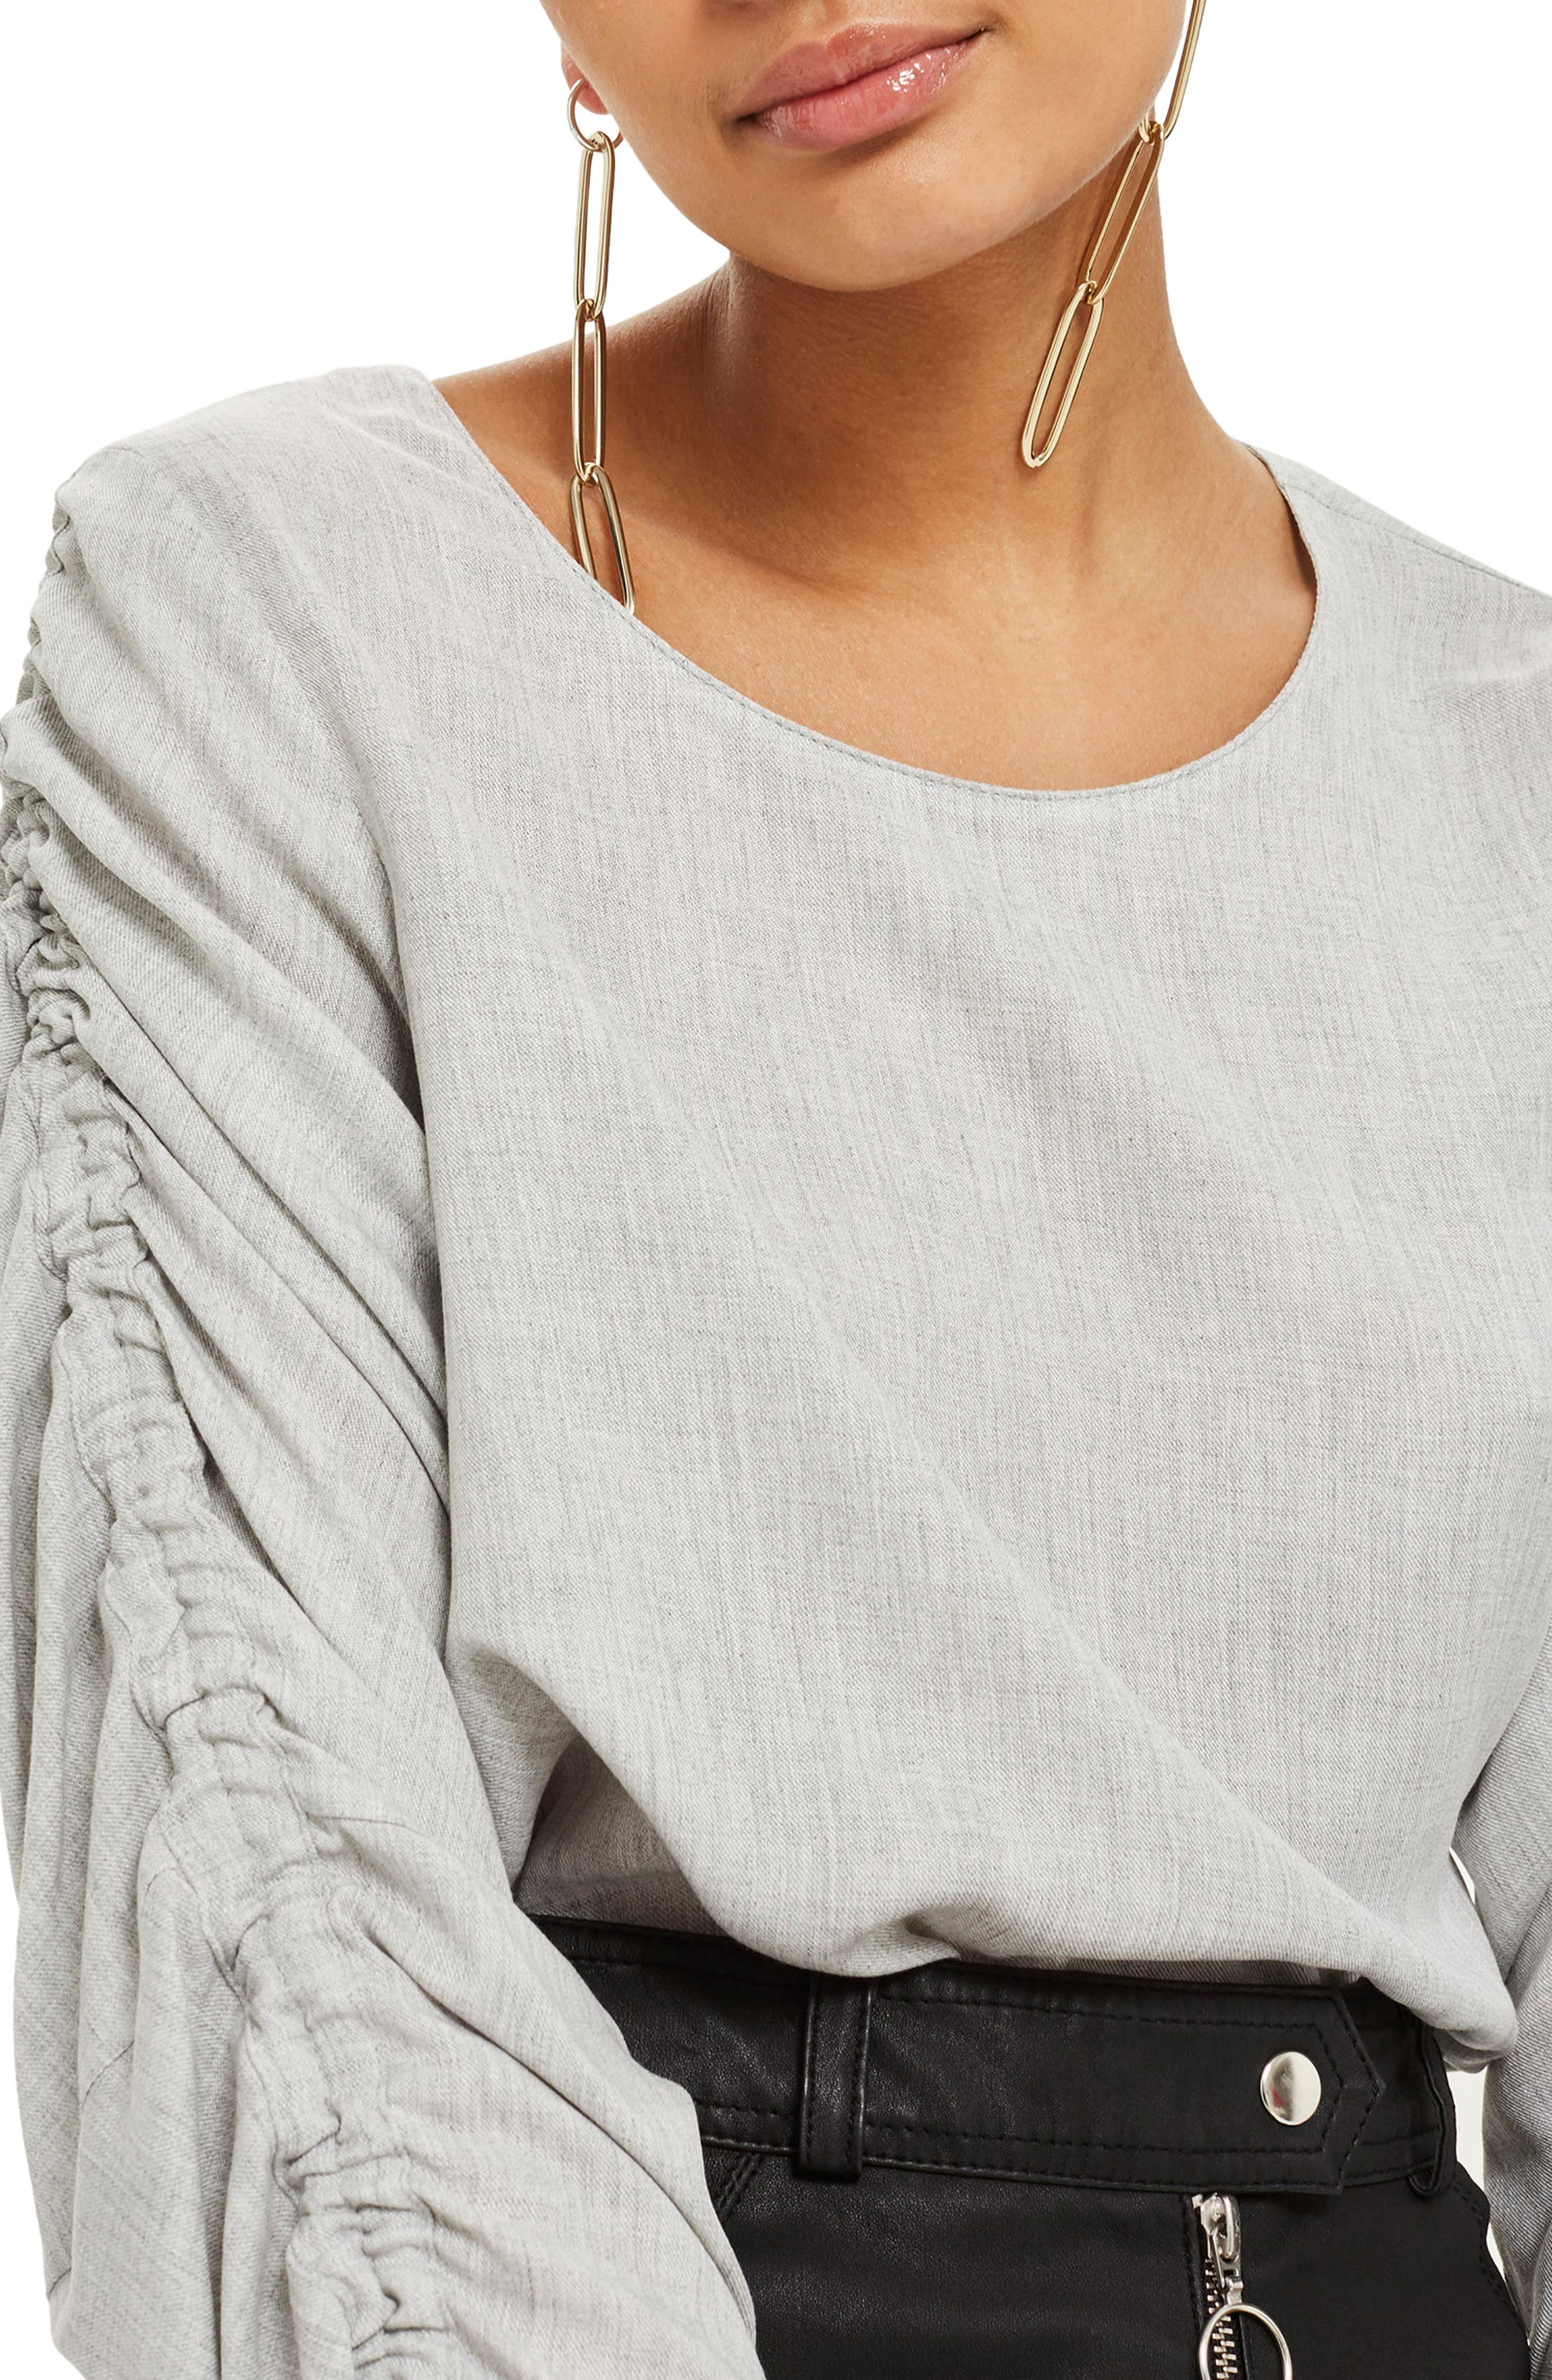 Ruched Sleeve Shirt,                             Alternate thumbnail 3, color,                             Grey